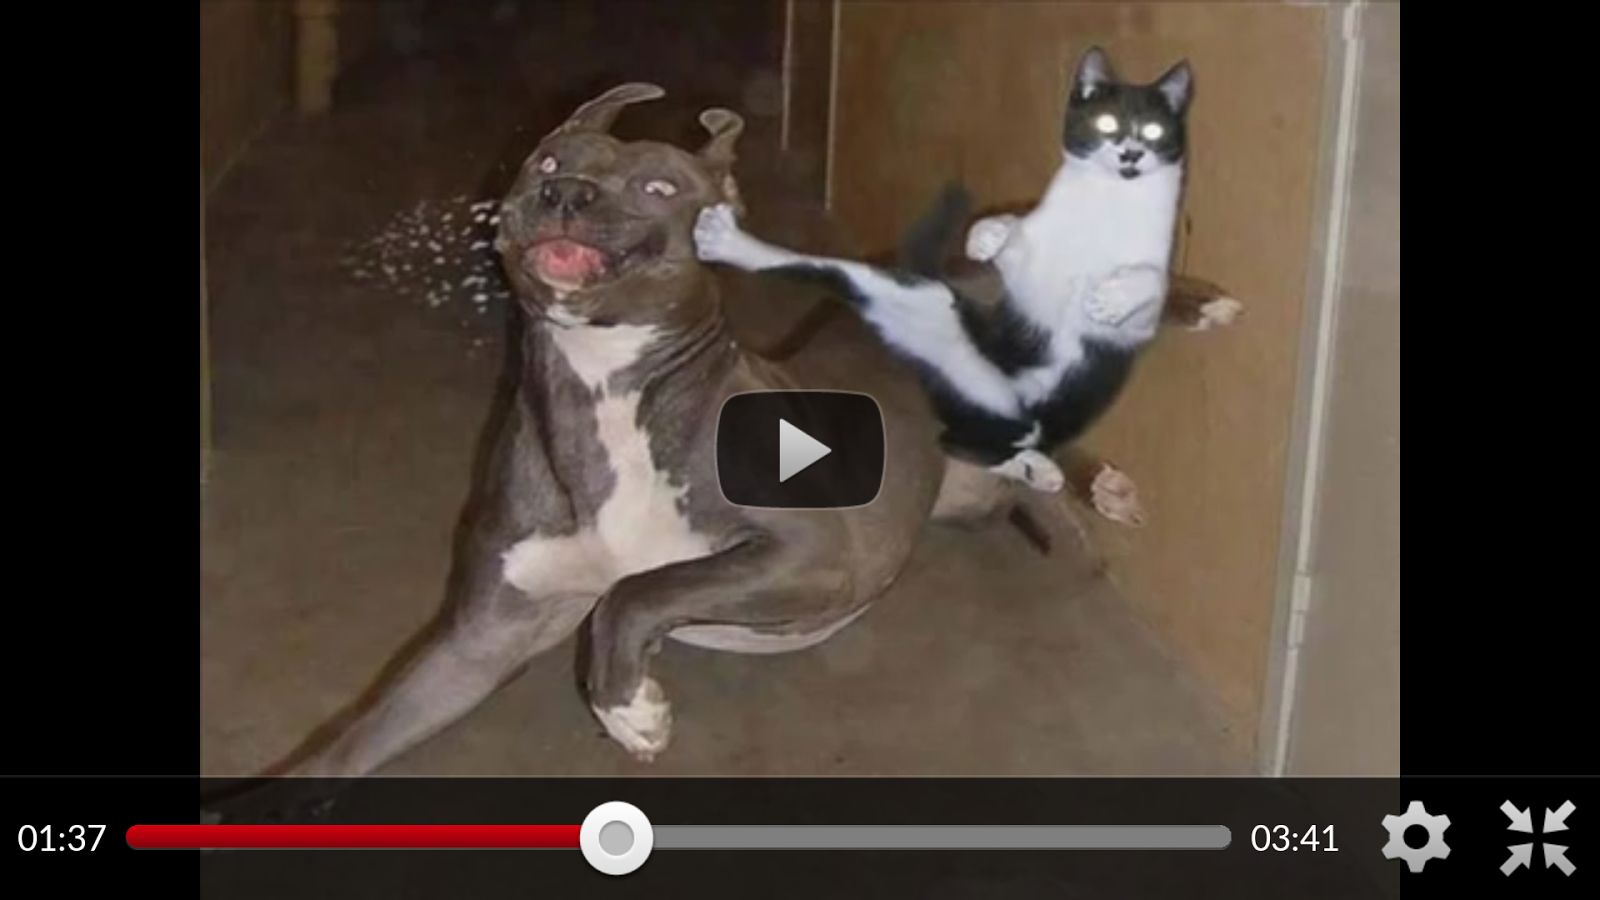 Uncategorized Funny Dog And Cat Videos funny animal videos cats dogs android apps on google play screenshot